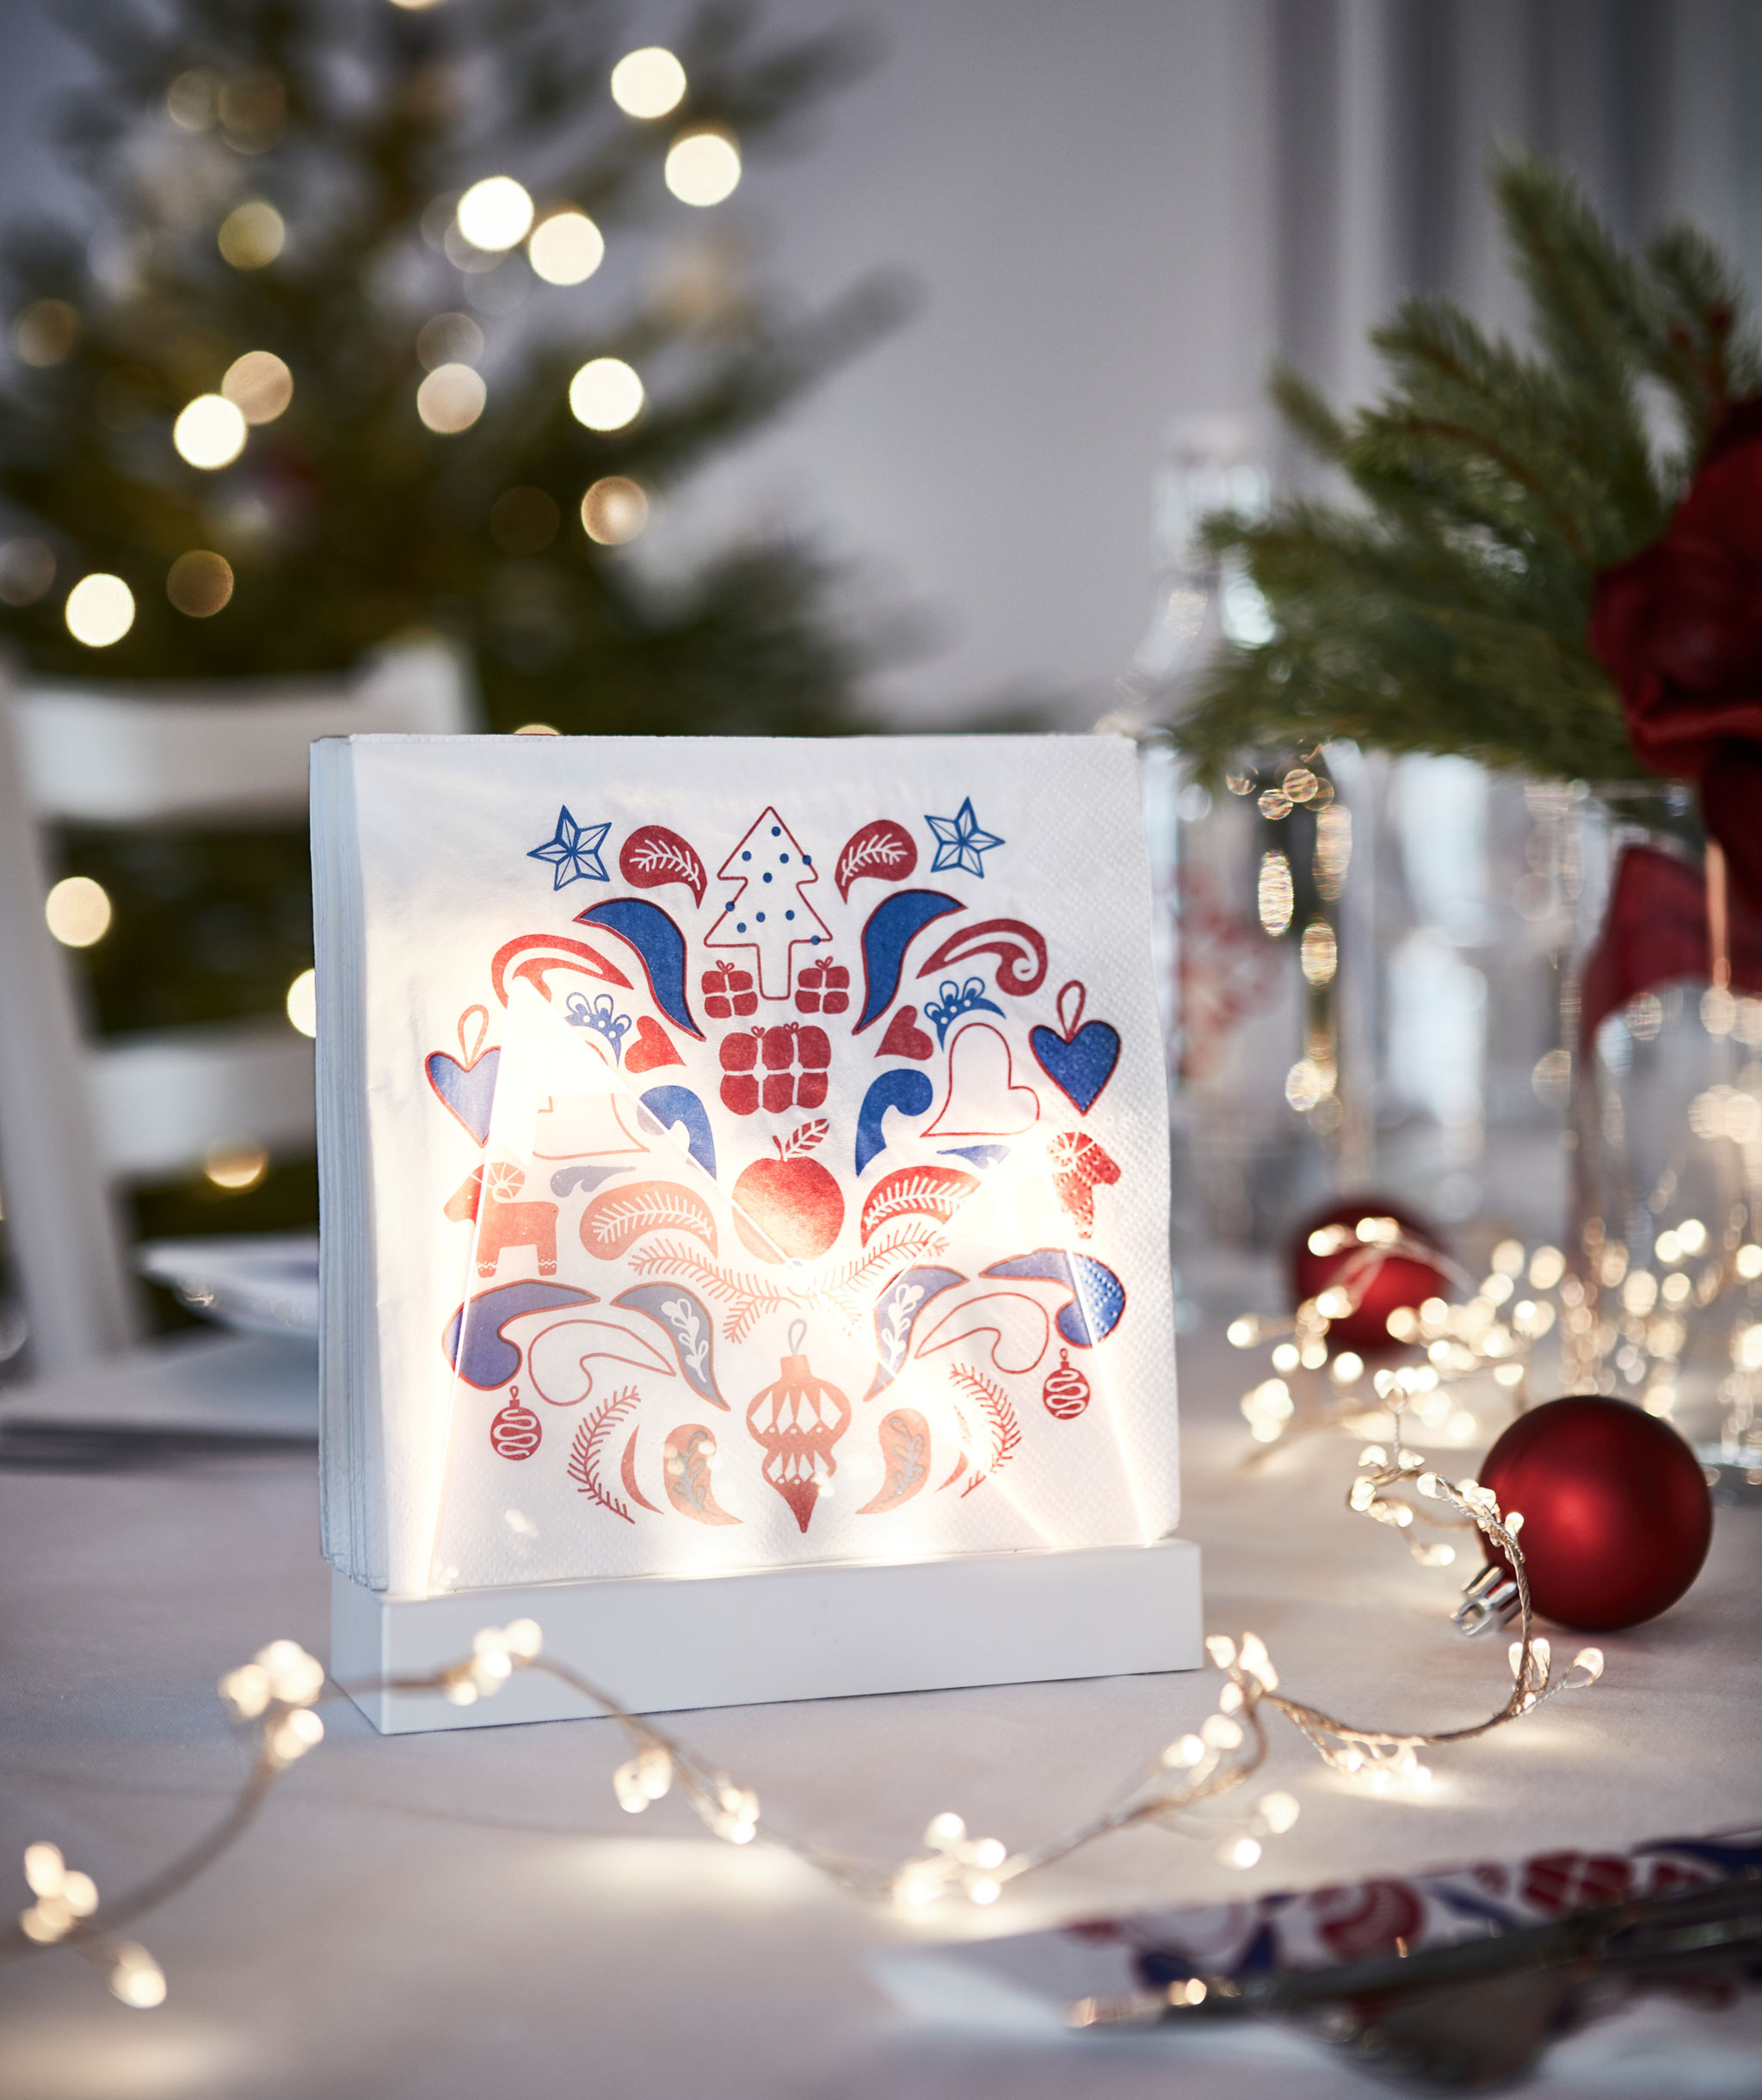 Festively patterned paper napkins standing upright in a lit stand, thus adding to the holiday-set table it's placed on.